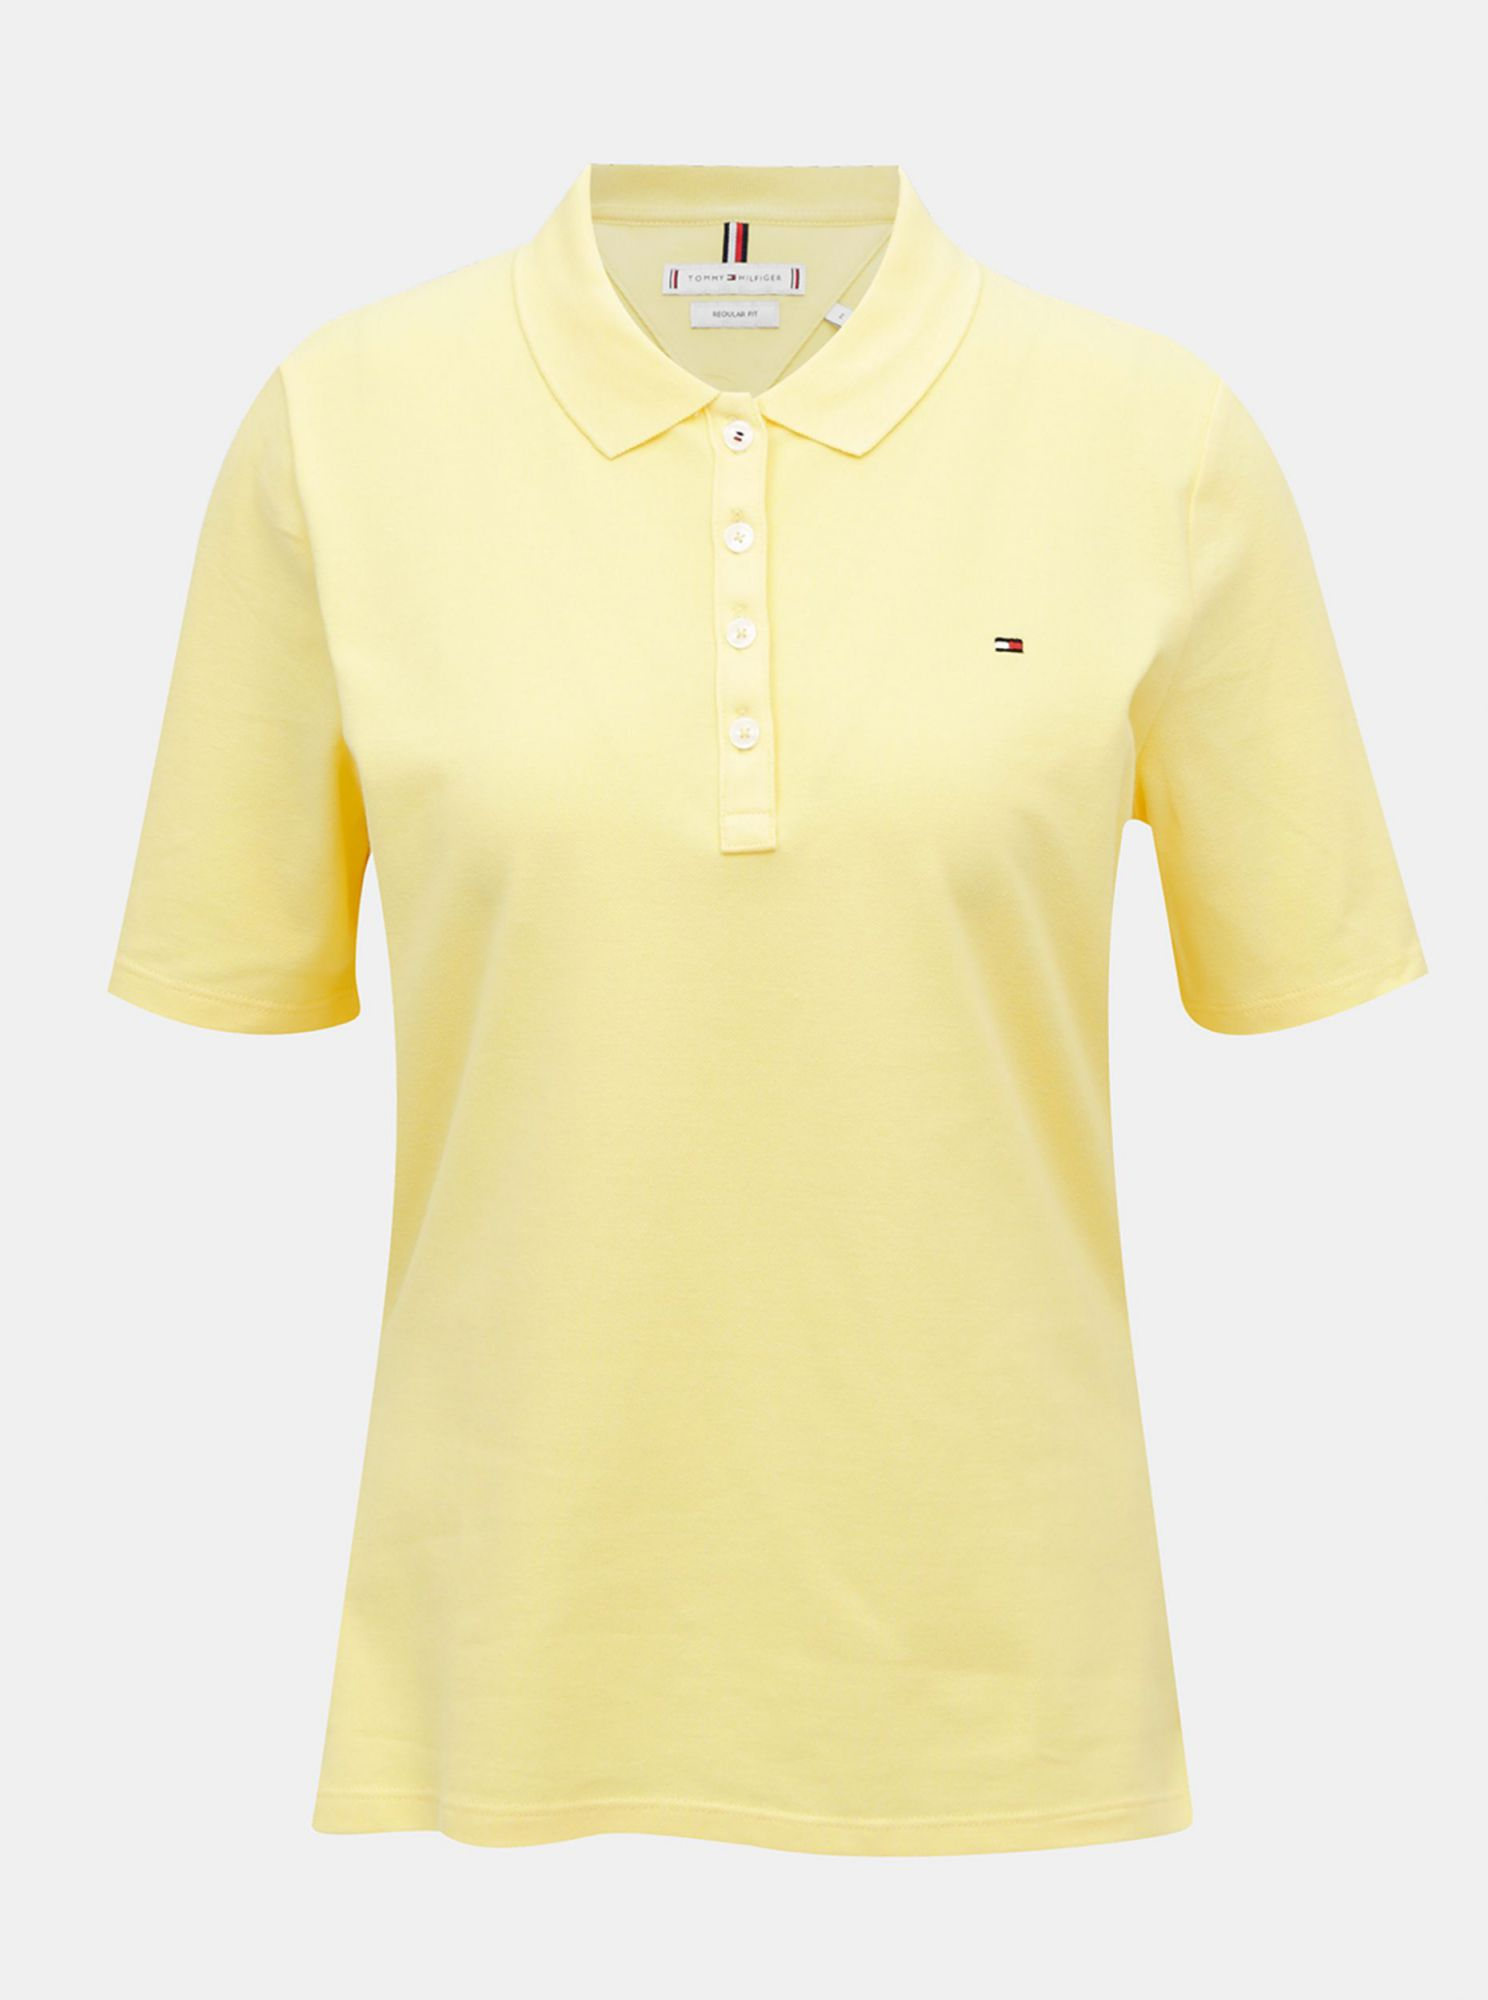 Yellow women's polo shirt Tommy Hilfiger